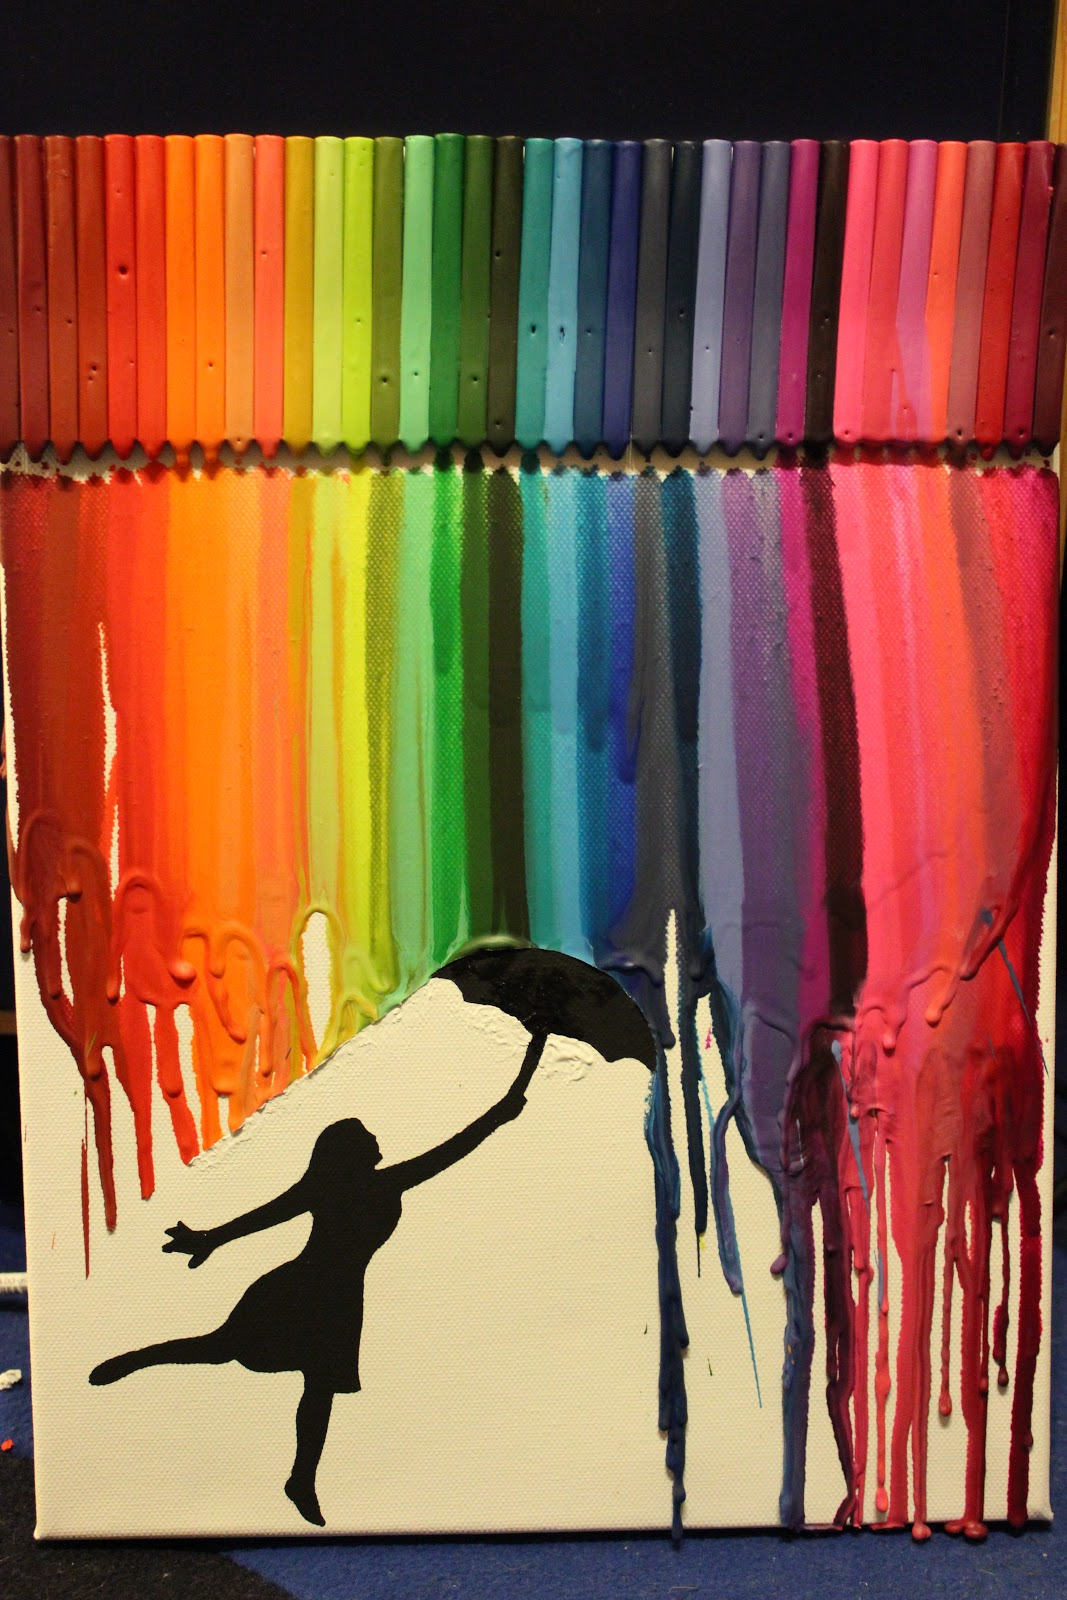 Geschichten Bilder Erfahrungen Crayons Art Woman In The Rain